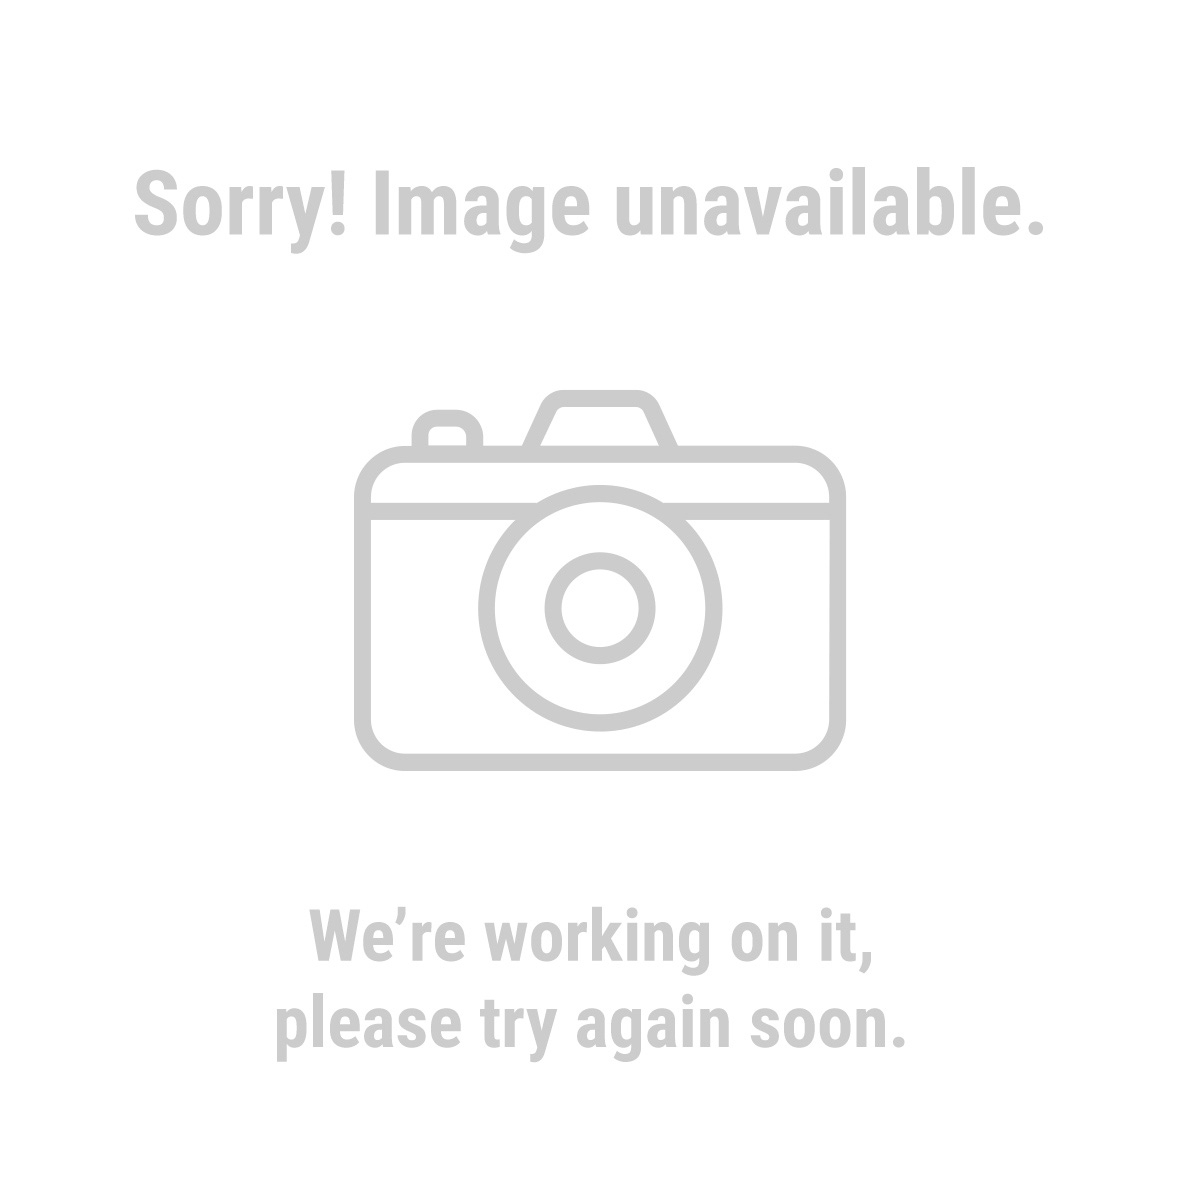 Portland Saw 68115 18 Piece Carbon Steel Hole Saw Set